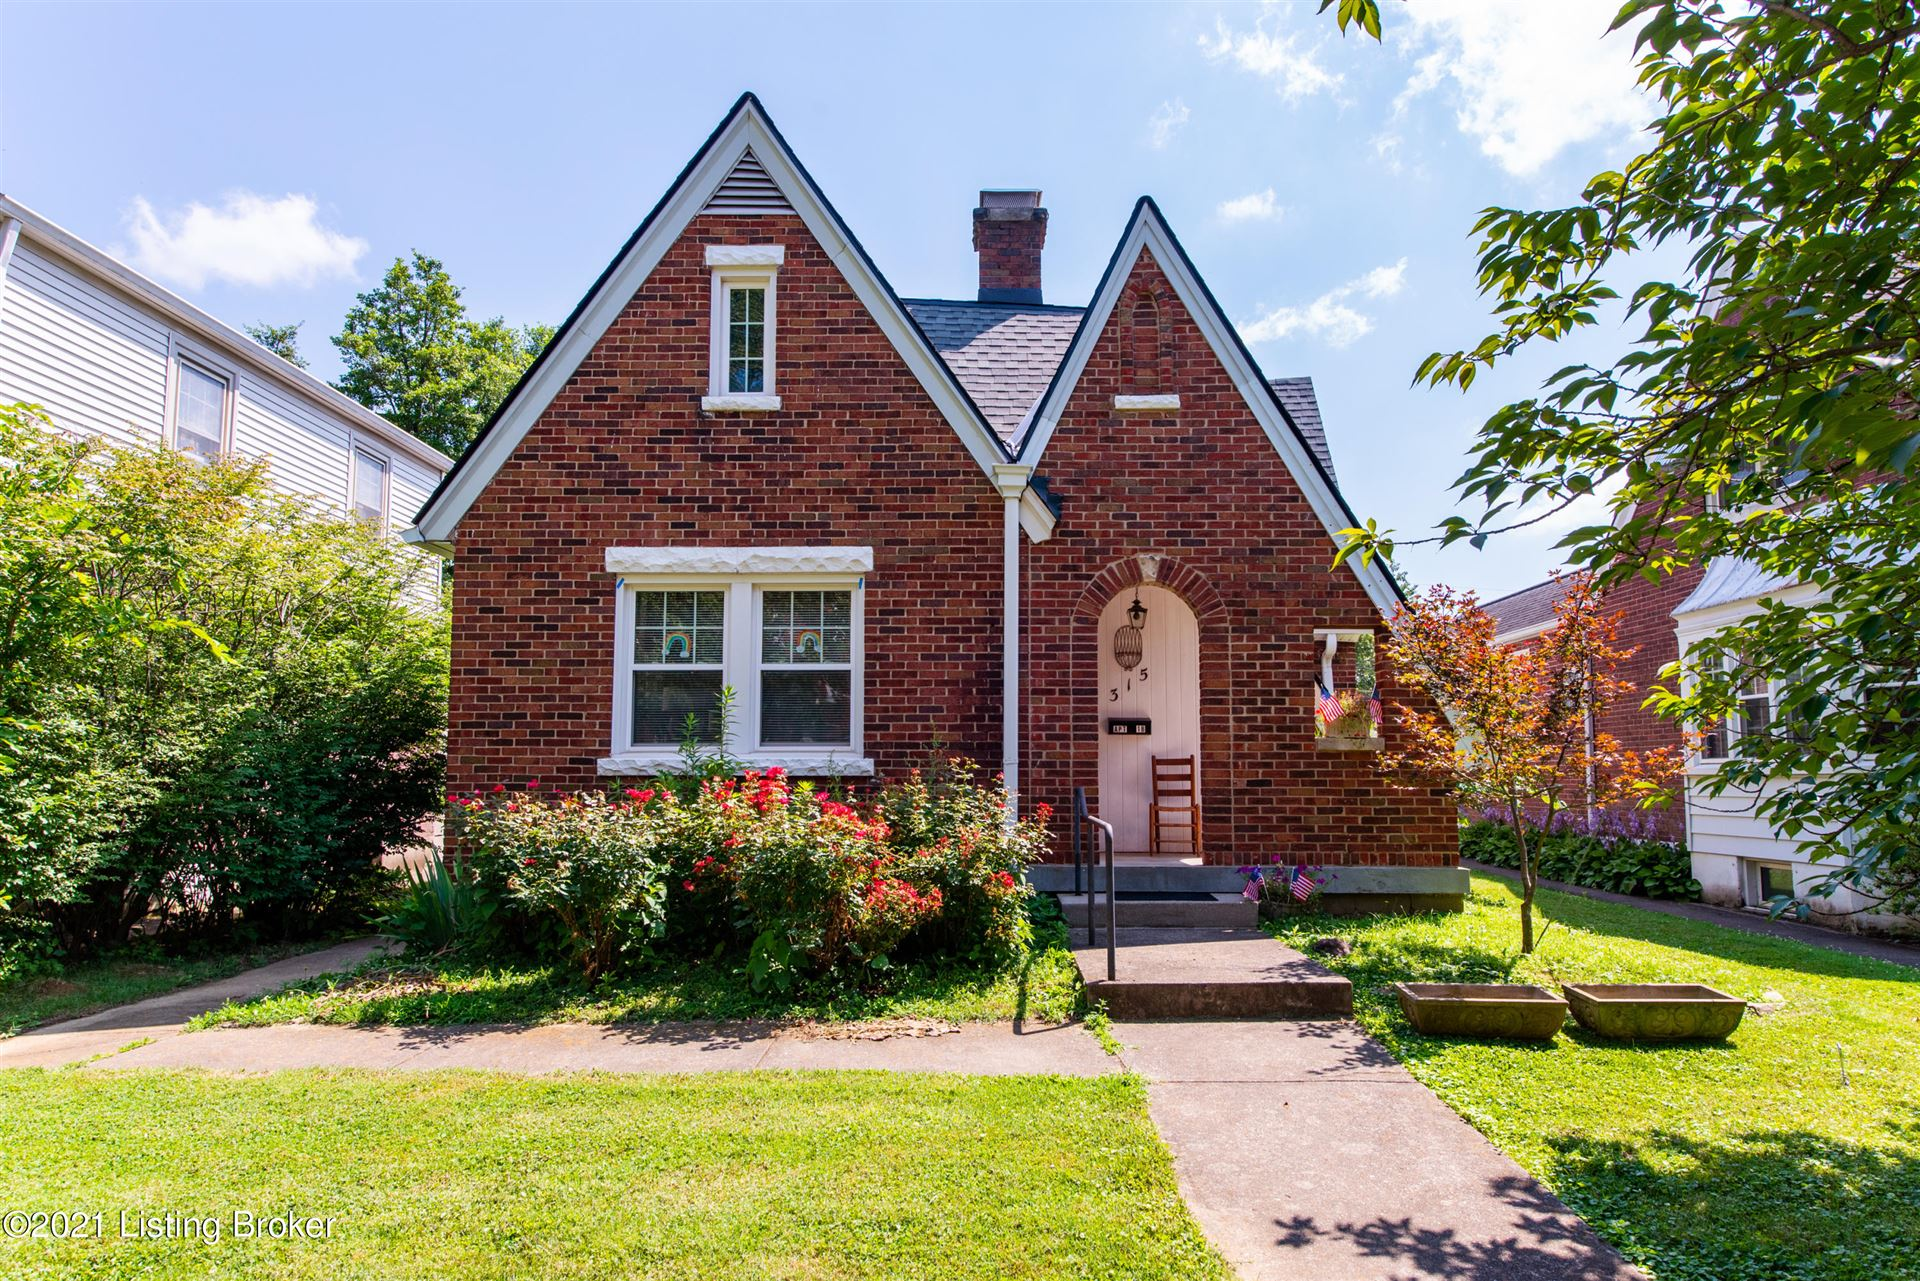 Photo for 315 Godfrey Ave, Louisville, KY 40206 (MLS # 1579282)